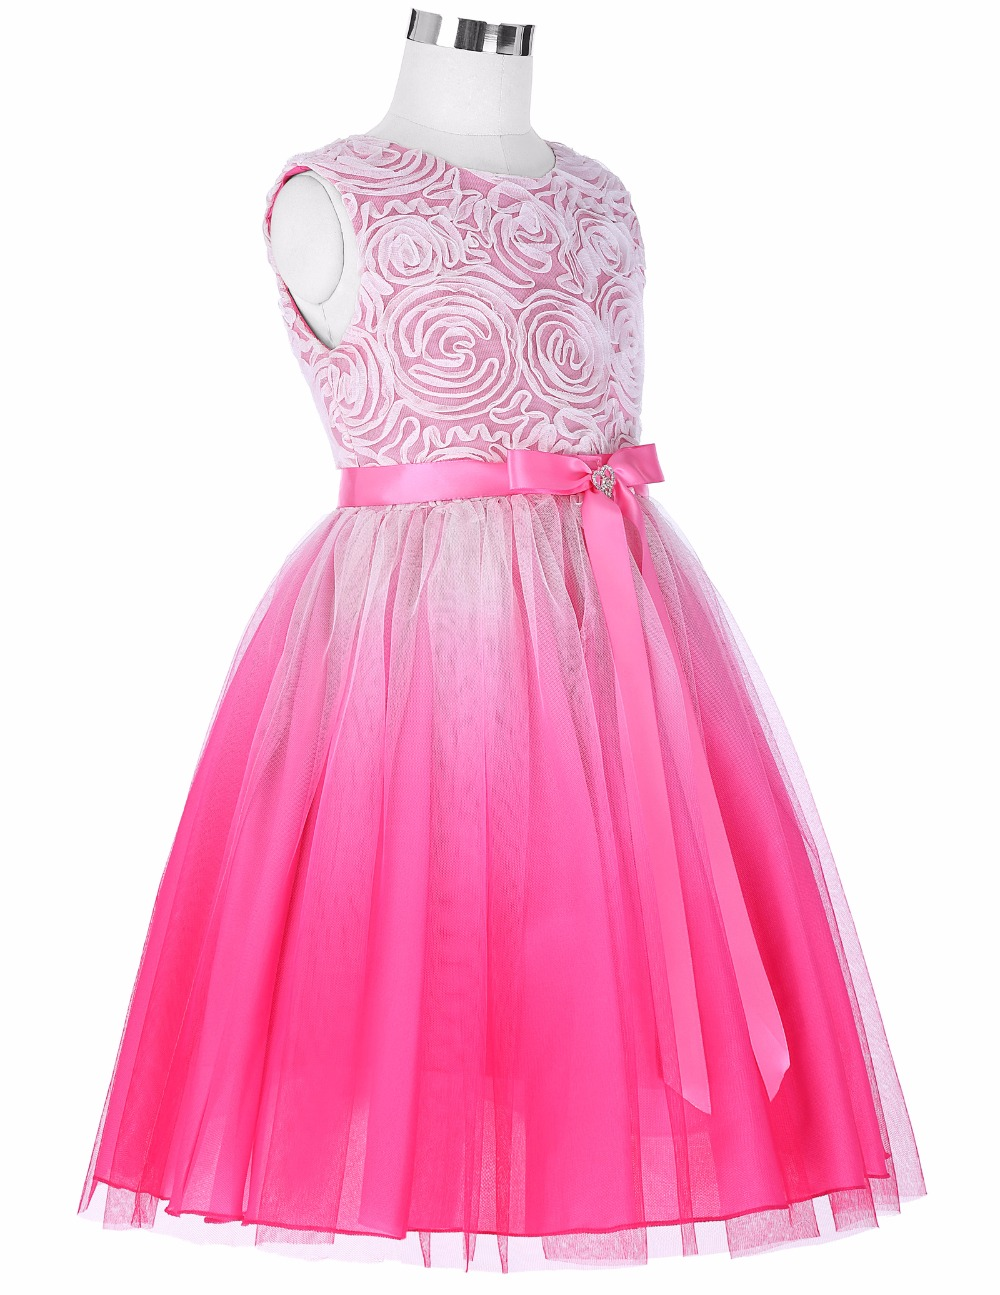 Grace Karin 2017 Flower Girl Dresses Luxury Tulle Flower Party Dresses For Wedding Party First Communion Dresses With Bow Ribbon 7